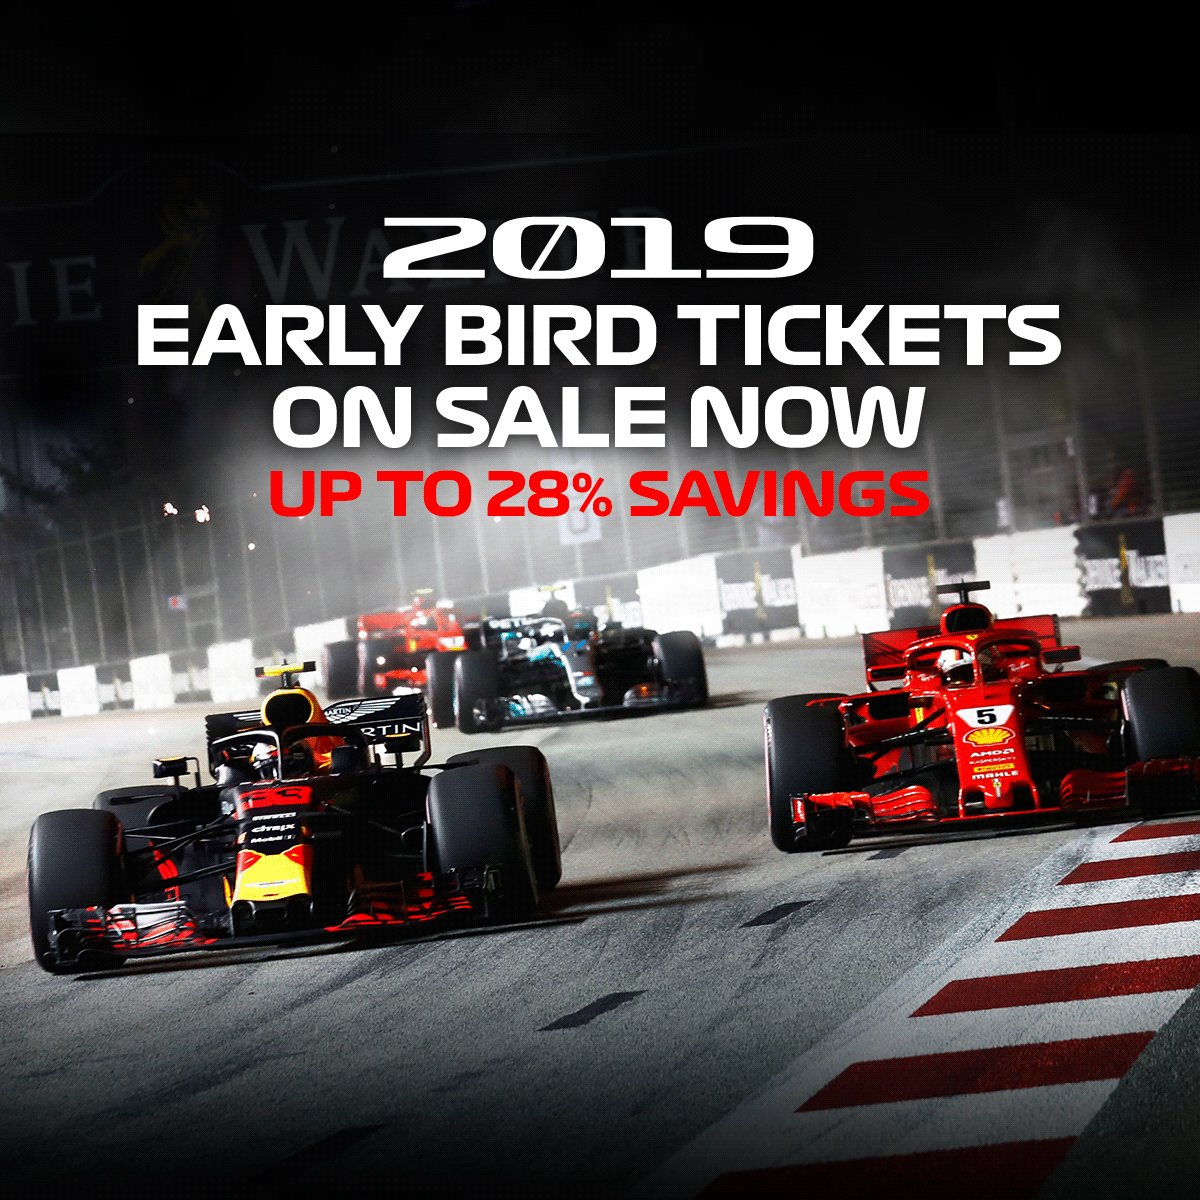 Dont miss this chance to save up to 28% on Early Bird tickets for the 2019 #SingaporeGP if you buy them now at bit.ly/2N3yC0y! #F1   #Formula1